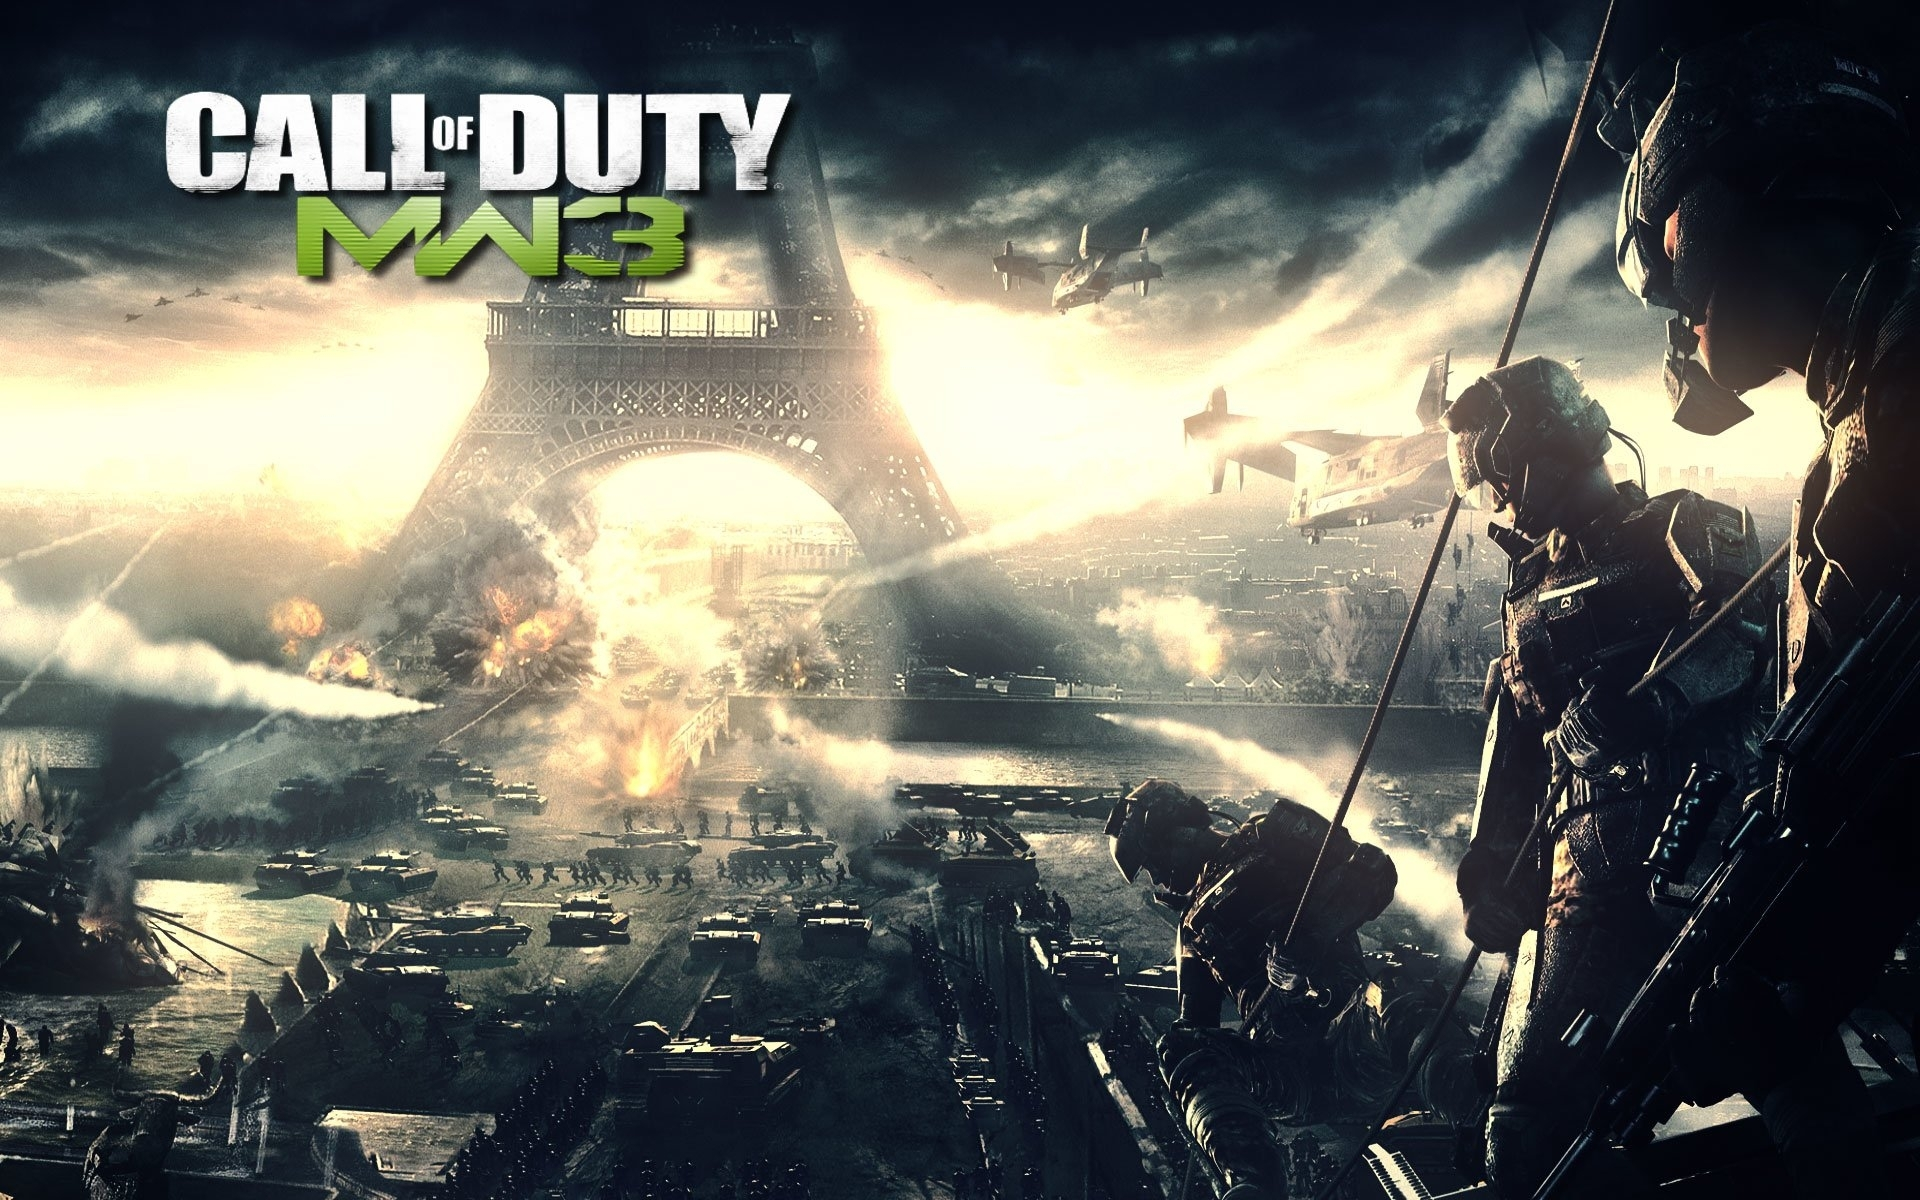 25 call of duty: modern warfare 3 hd wallpapers | background images